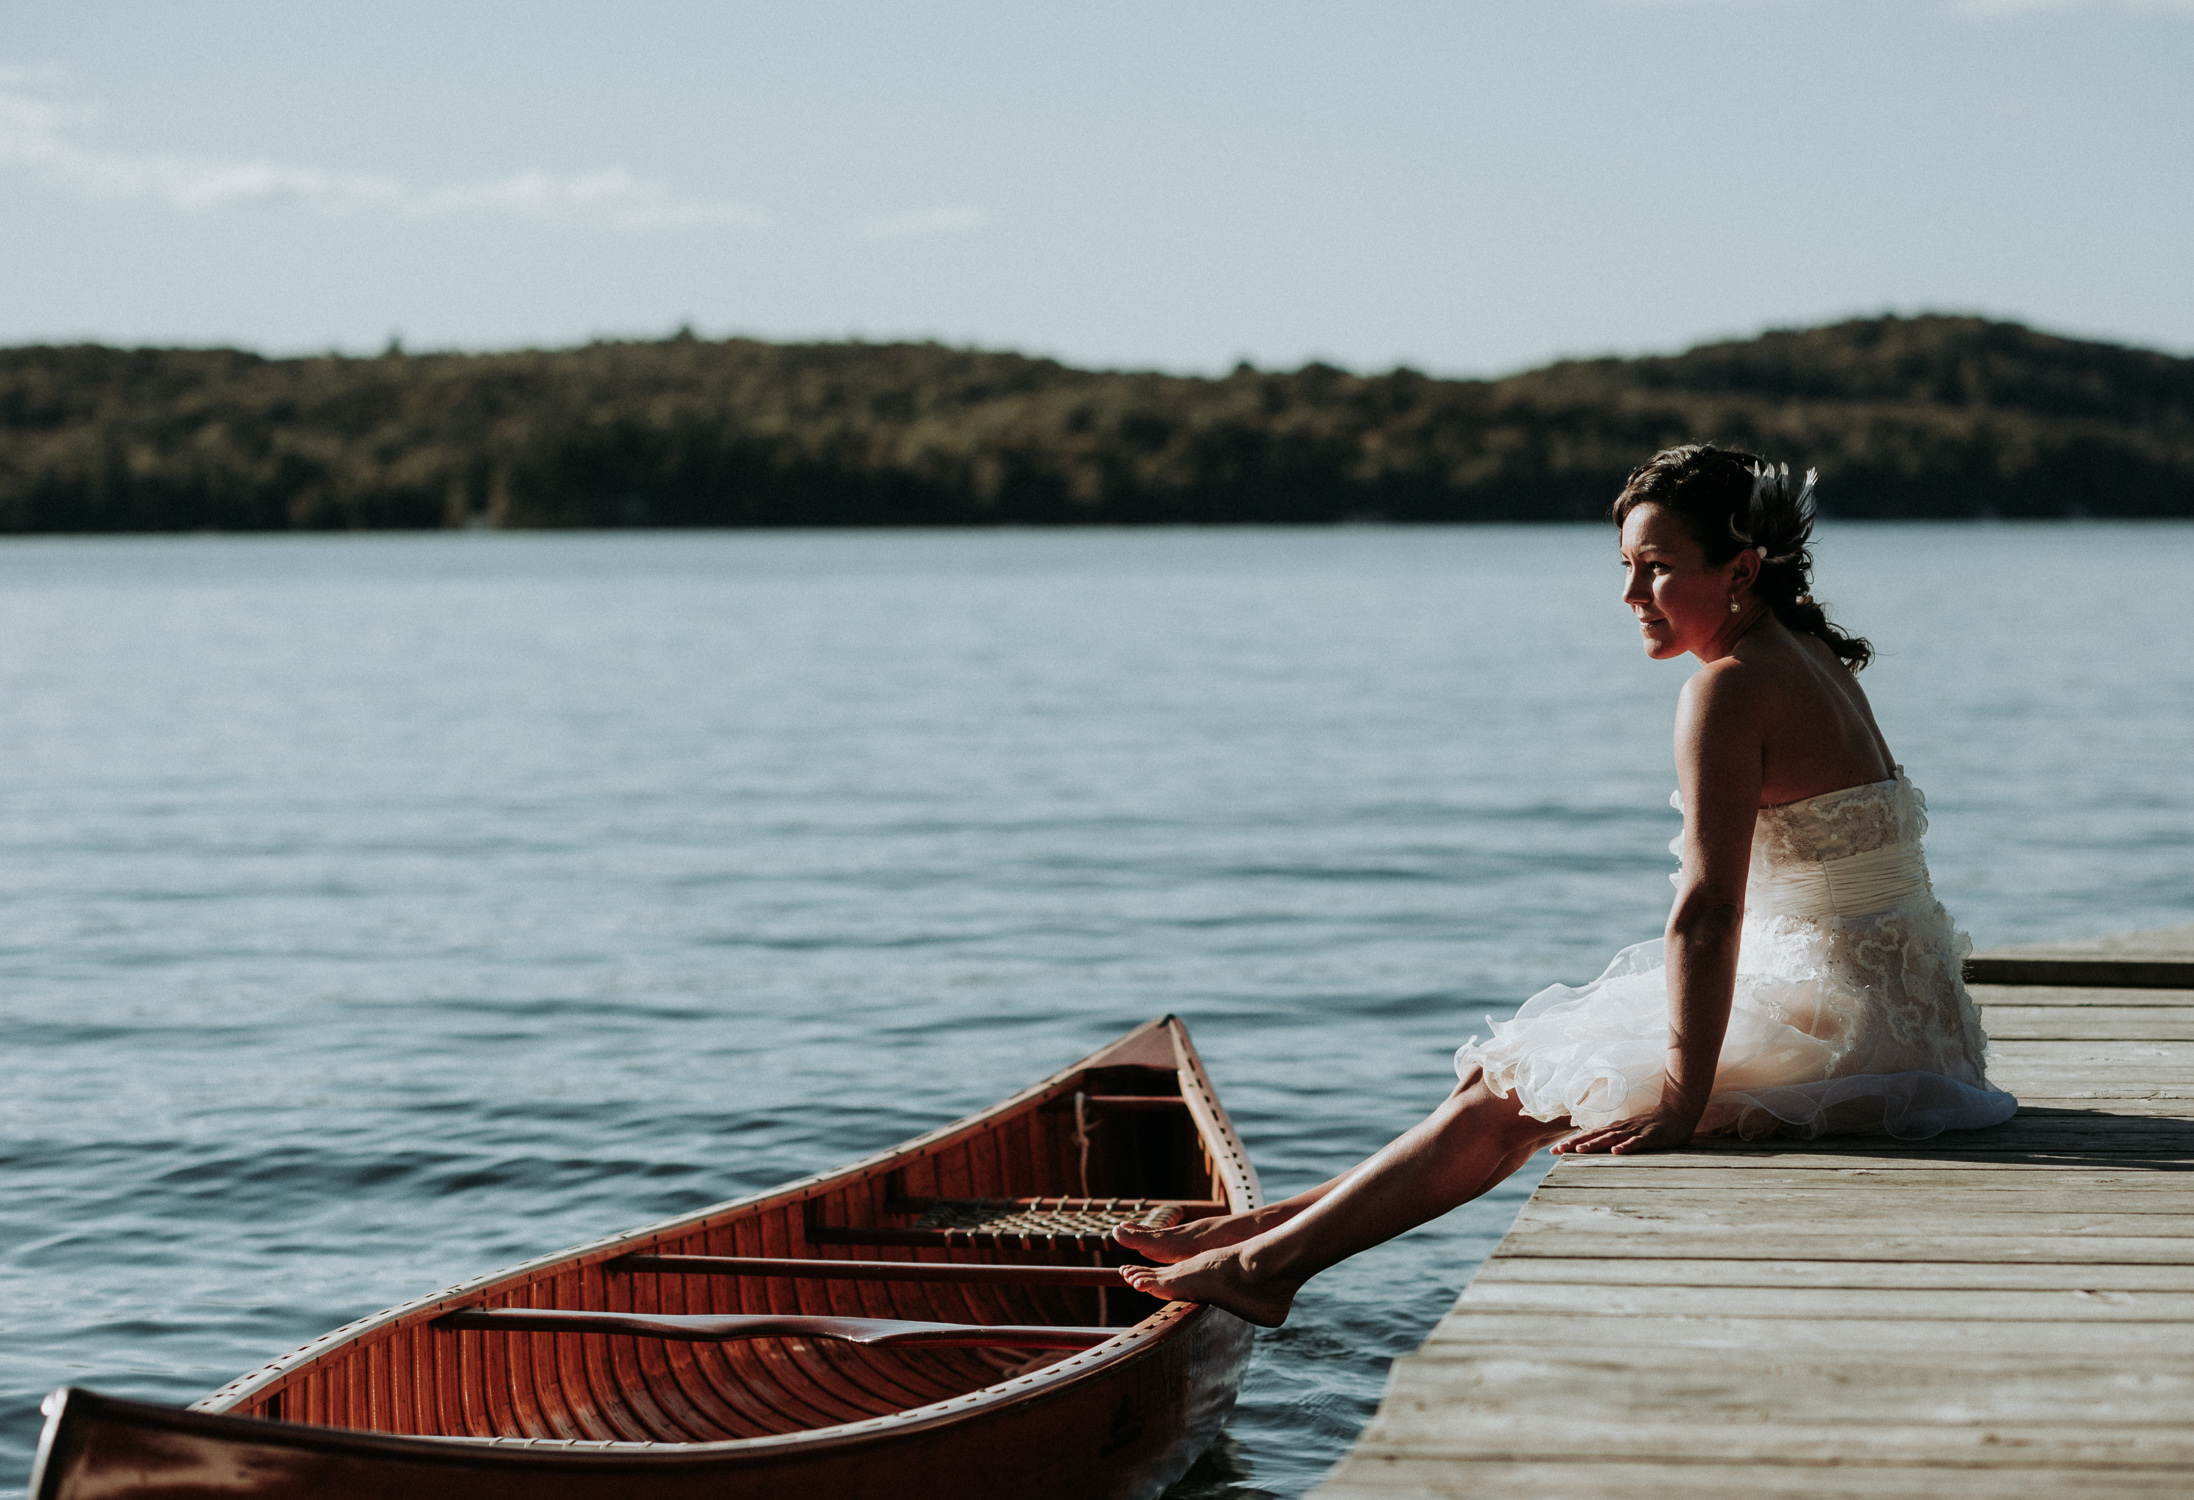 Chloe and her canoe on the dock before paddling into the cottage wedding ceremony on Lake of Bays